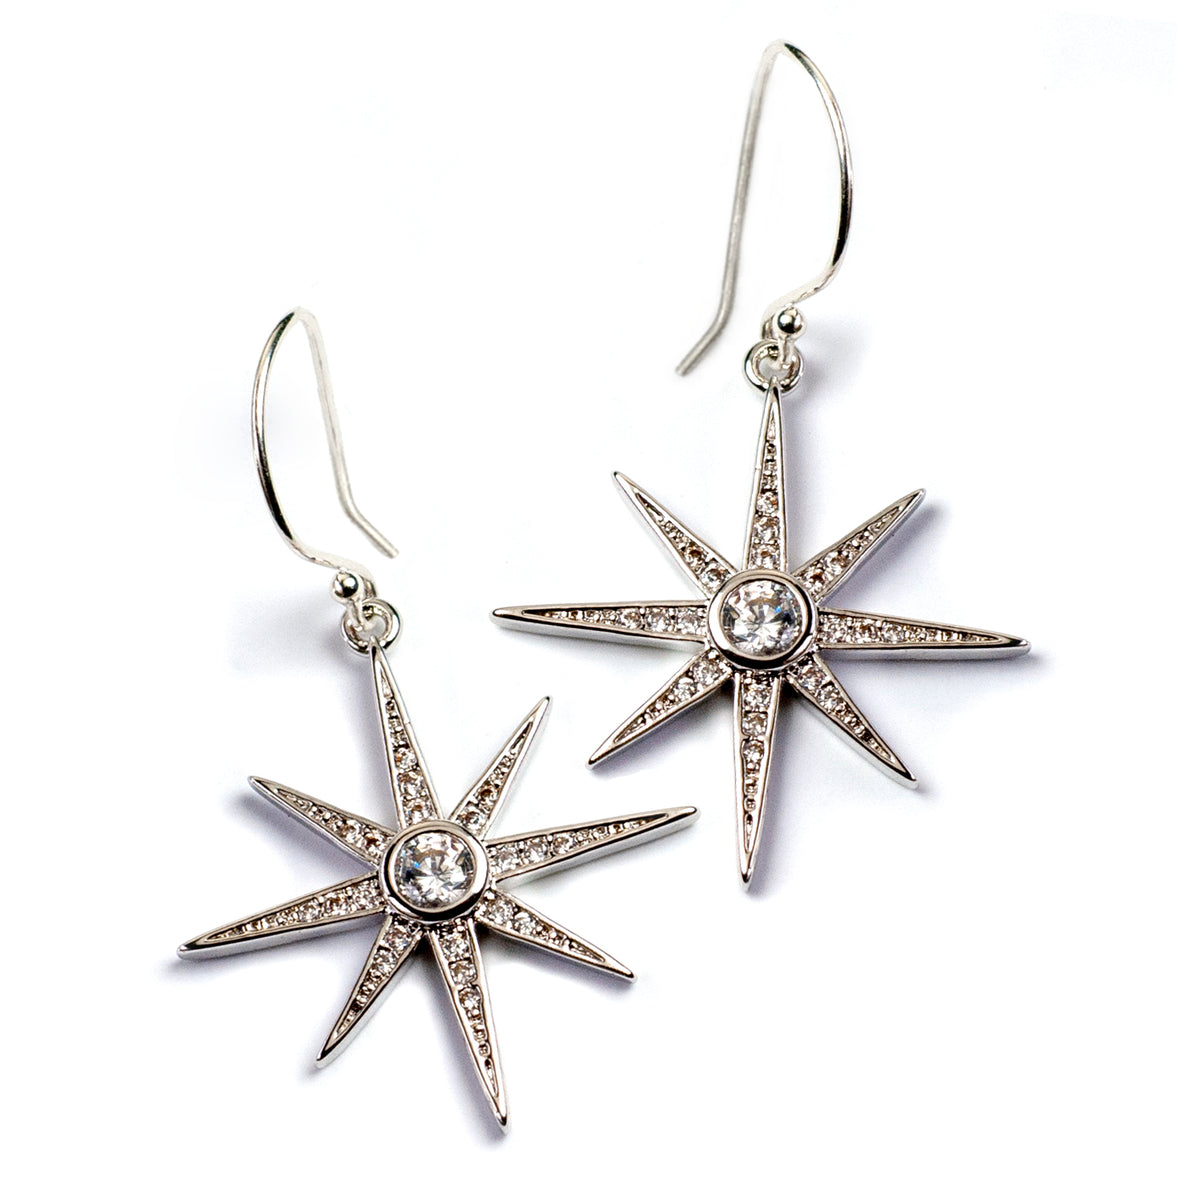 North Star Earrings E1506 - Sweet Romance Wholesale